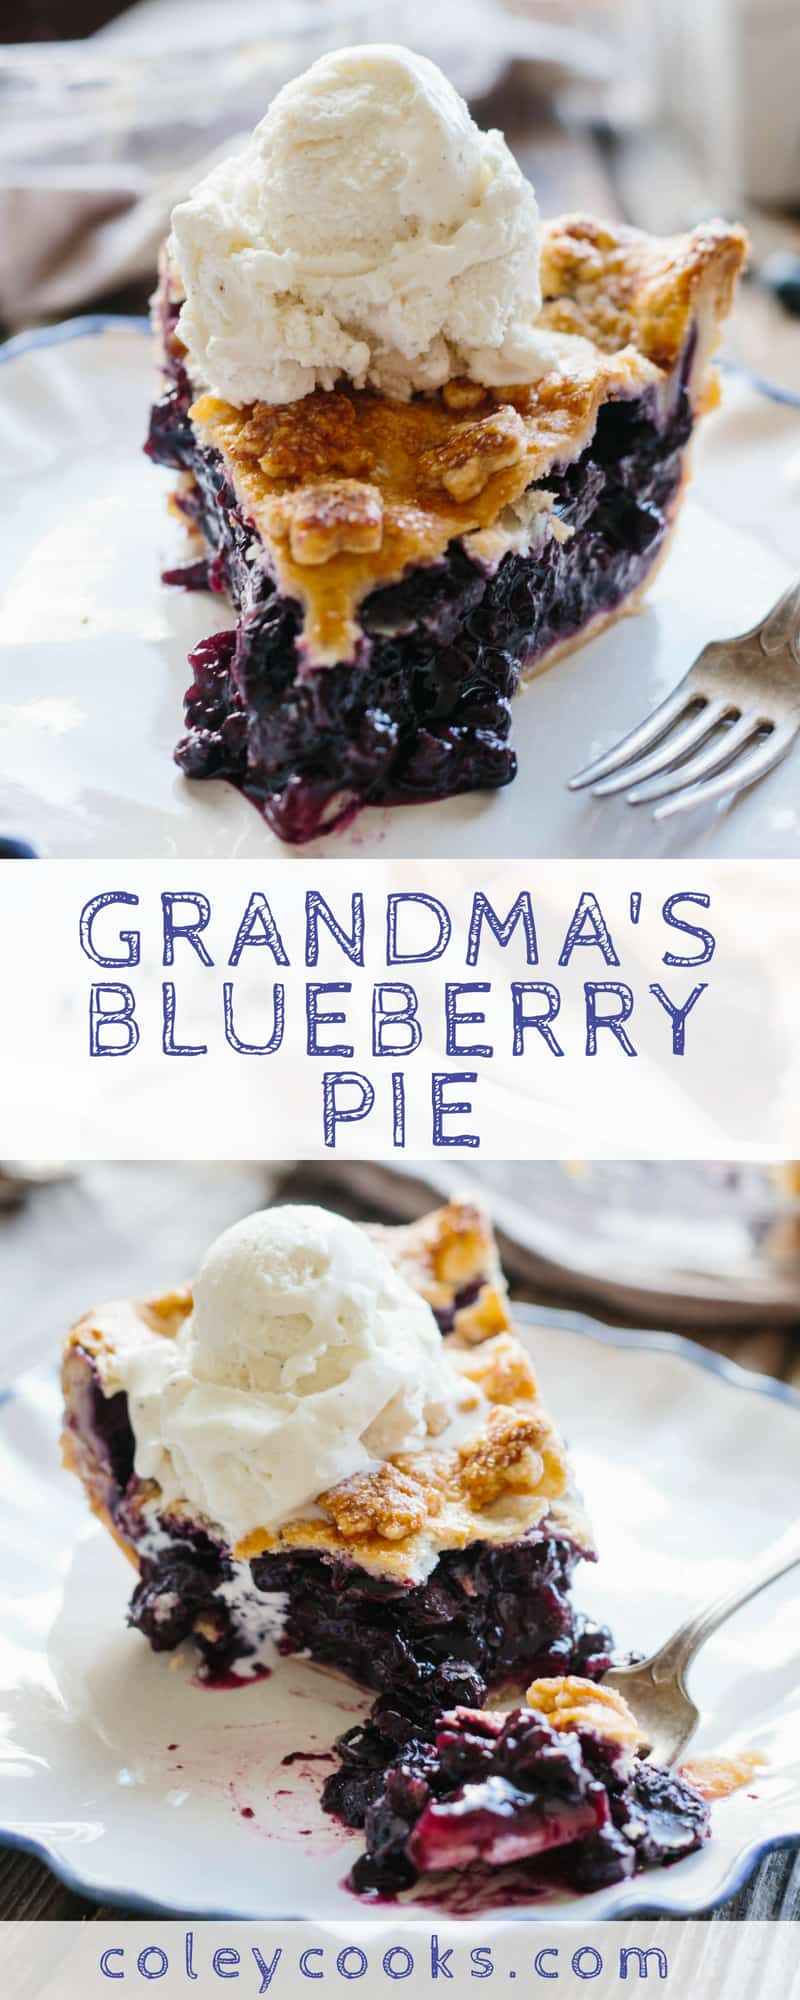 Grandma's Blueberry Pie | This simple recipe for my grandma's blueberry pie is a summer classic! Perfect for 4th of July. #easy #summer #dessert #recipe #4thofjuly #blueberry #pie | ColeyCooks.com